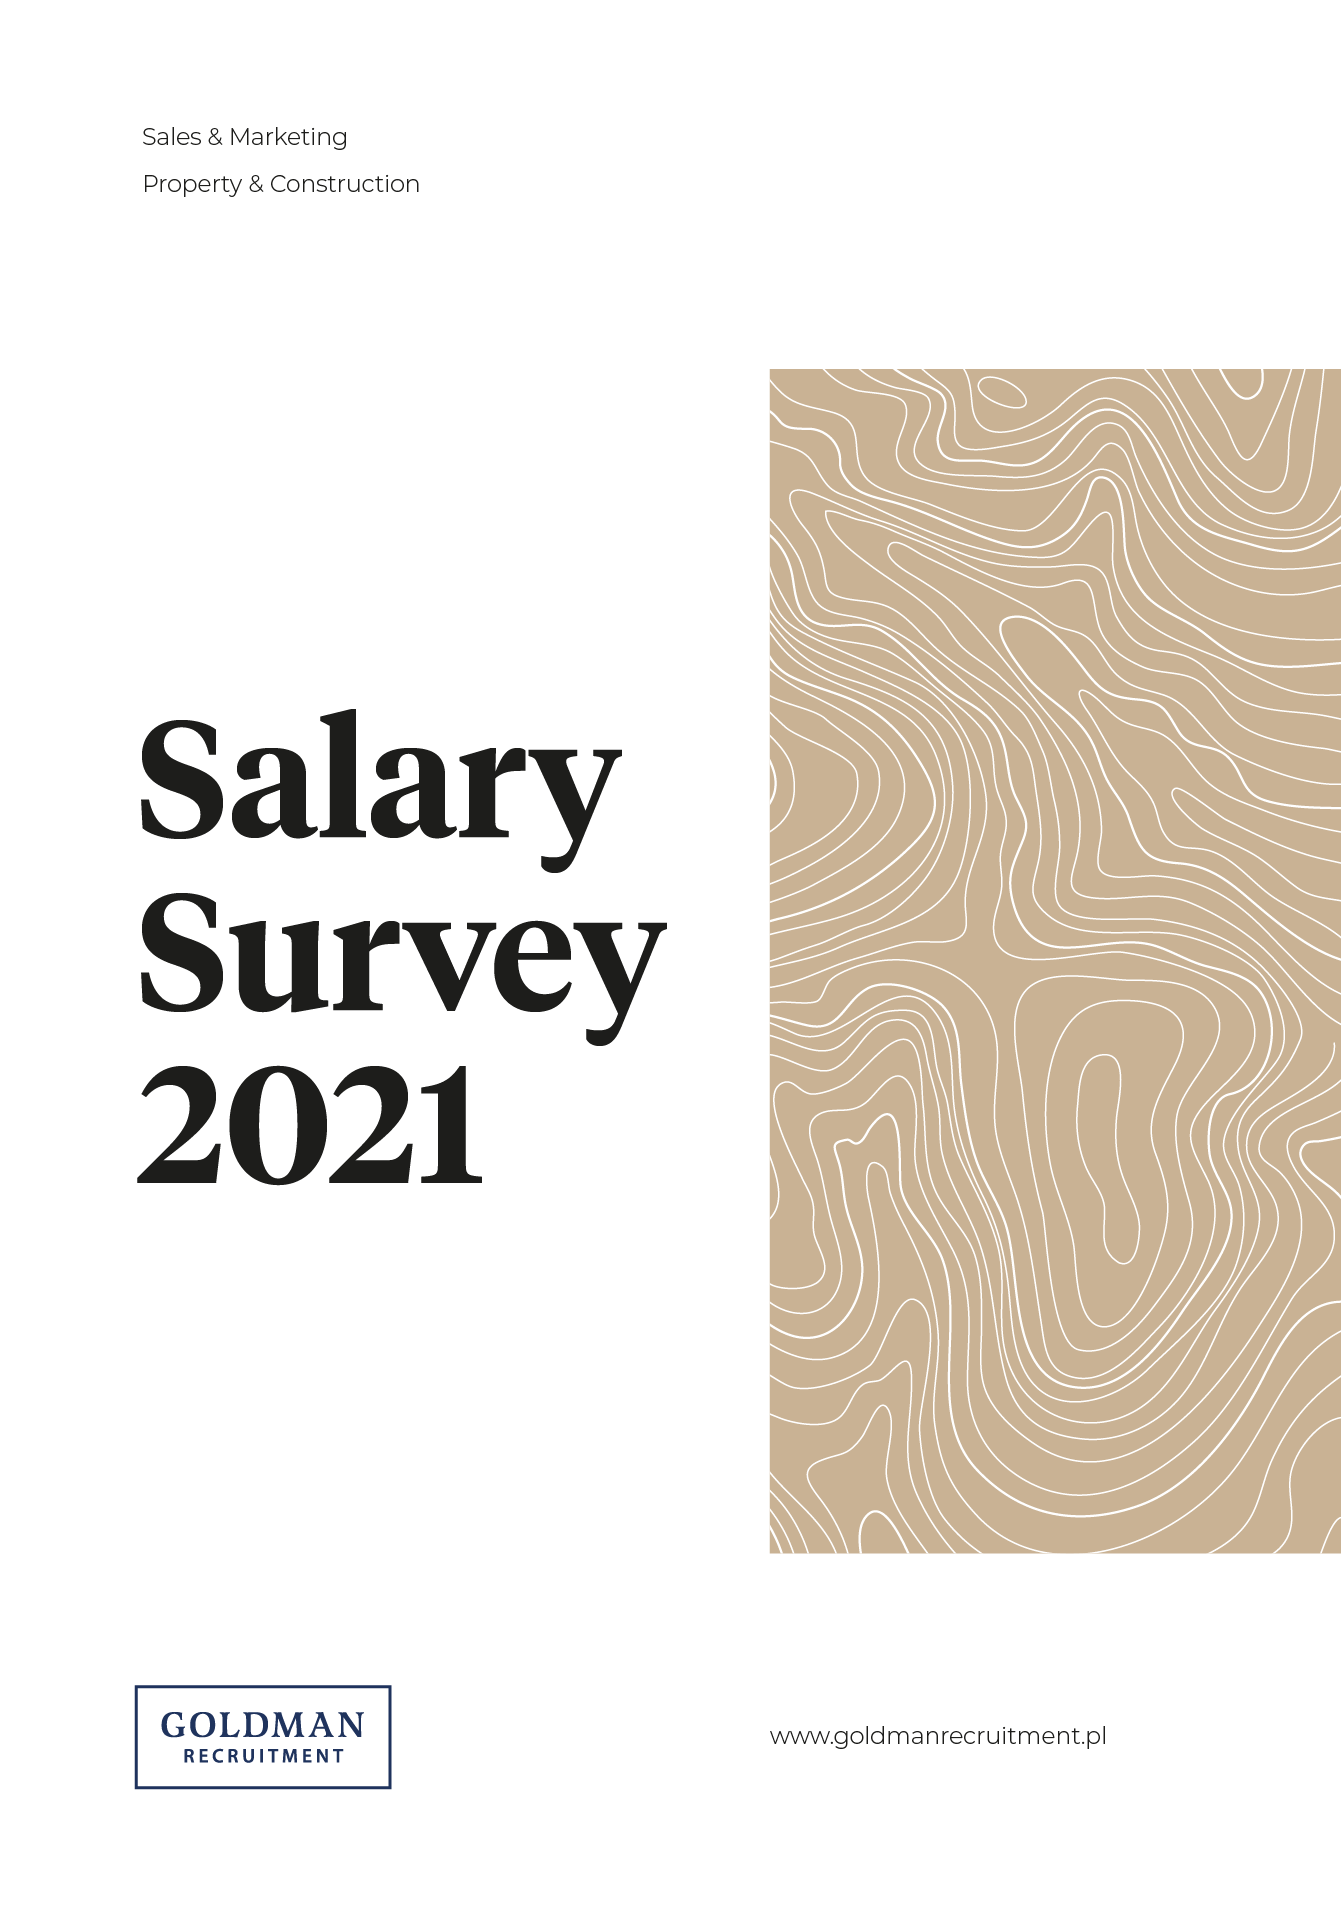 Sales & Marketing Salary Survey 2021